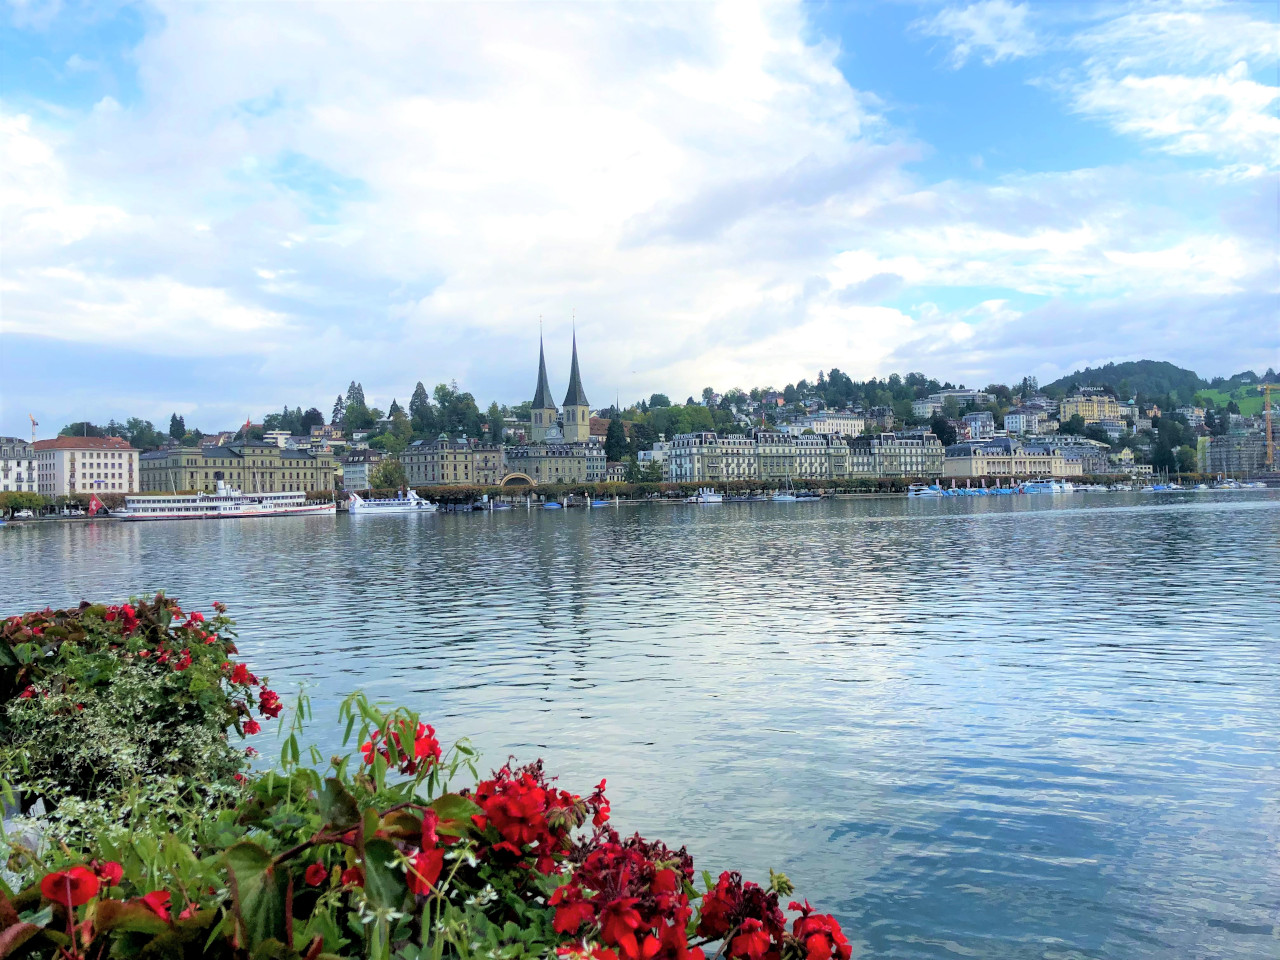 Lake Lucerne, MyFaultyCompass. Your comprehensive Lucerne guide with the best things to do in Lucerne, day trips from Lucerne, restaurants in Lucerne, places to stay in Lucerne, and more.